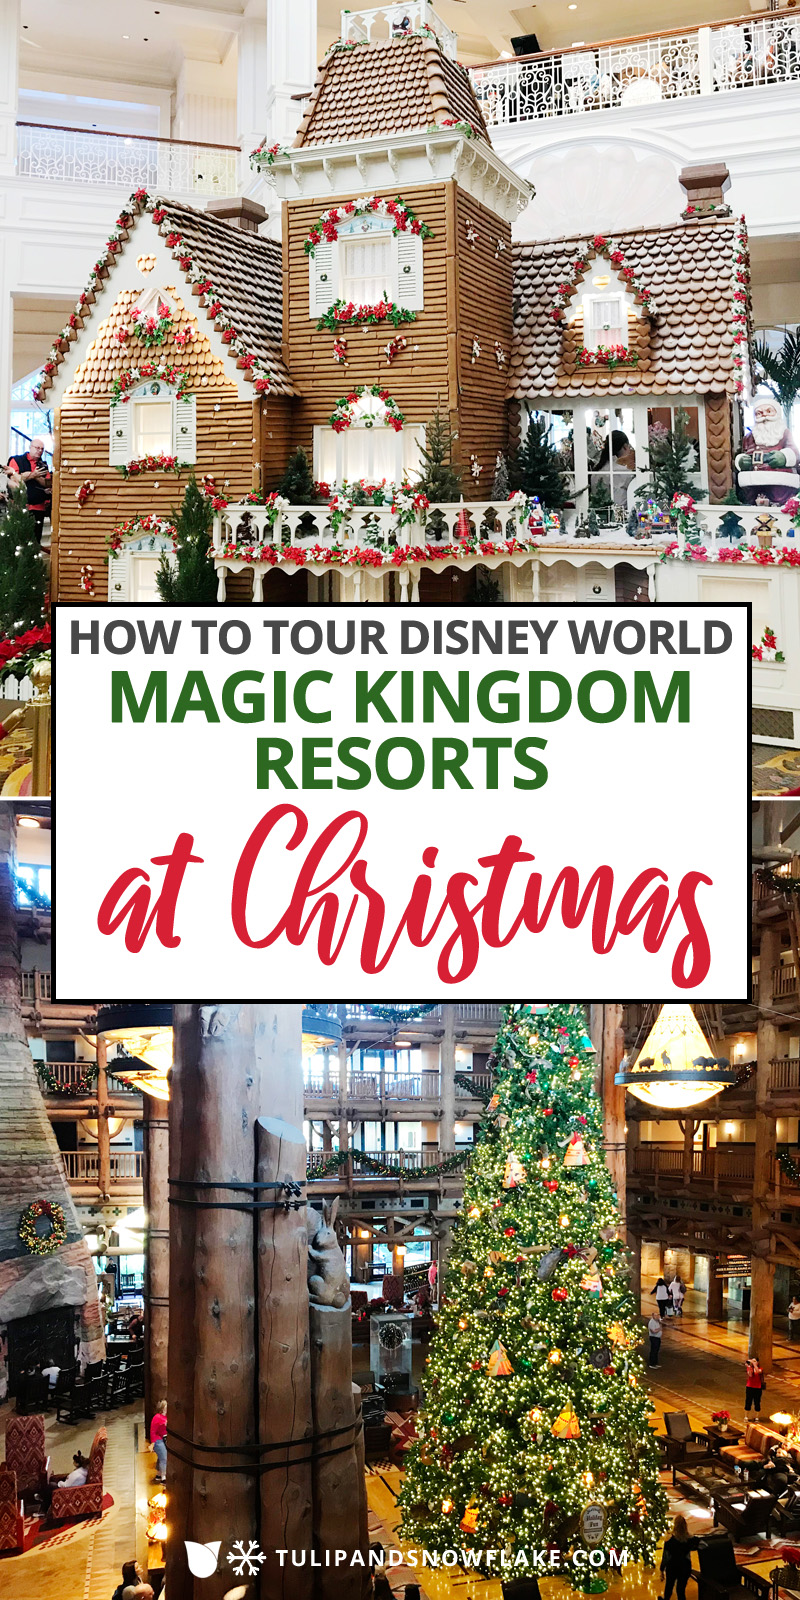 Magic Kingdom Resorts at Christmas